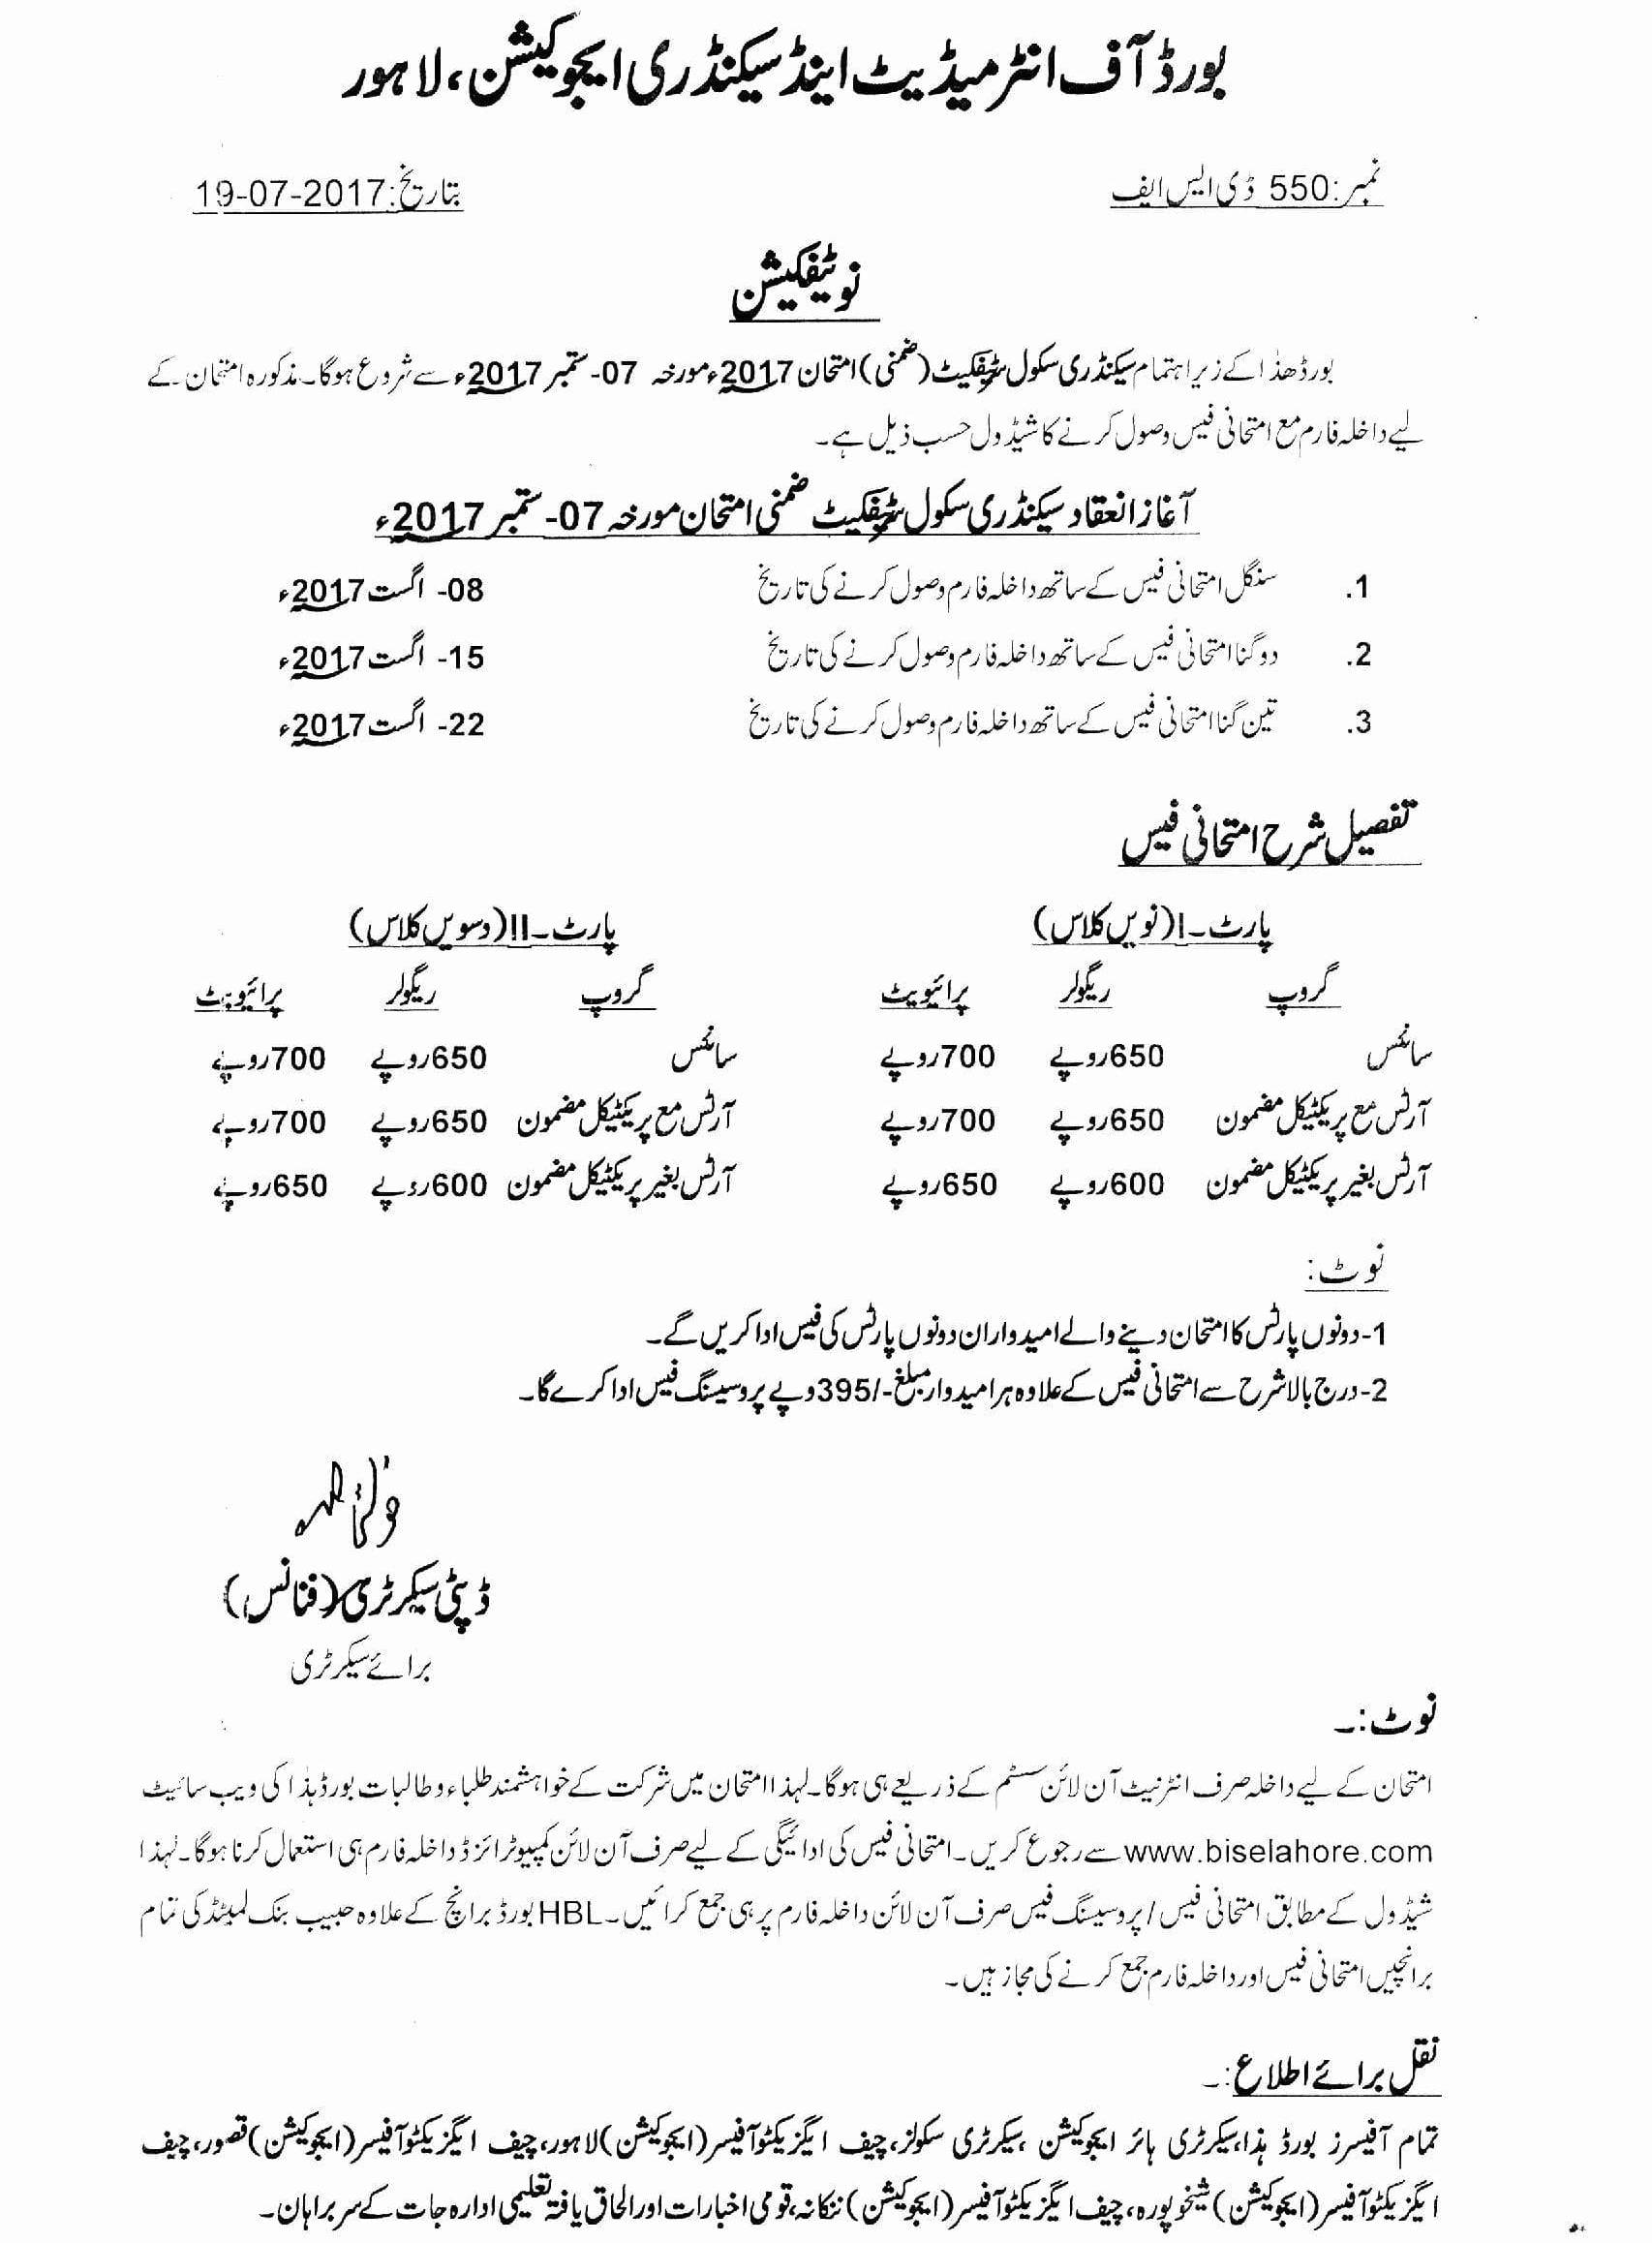 Lahore Board Matric Supply Exams Admission Form 2017 Fee Schedule